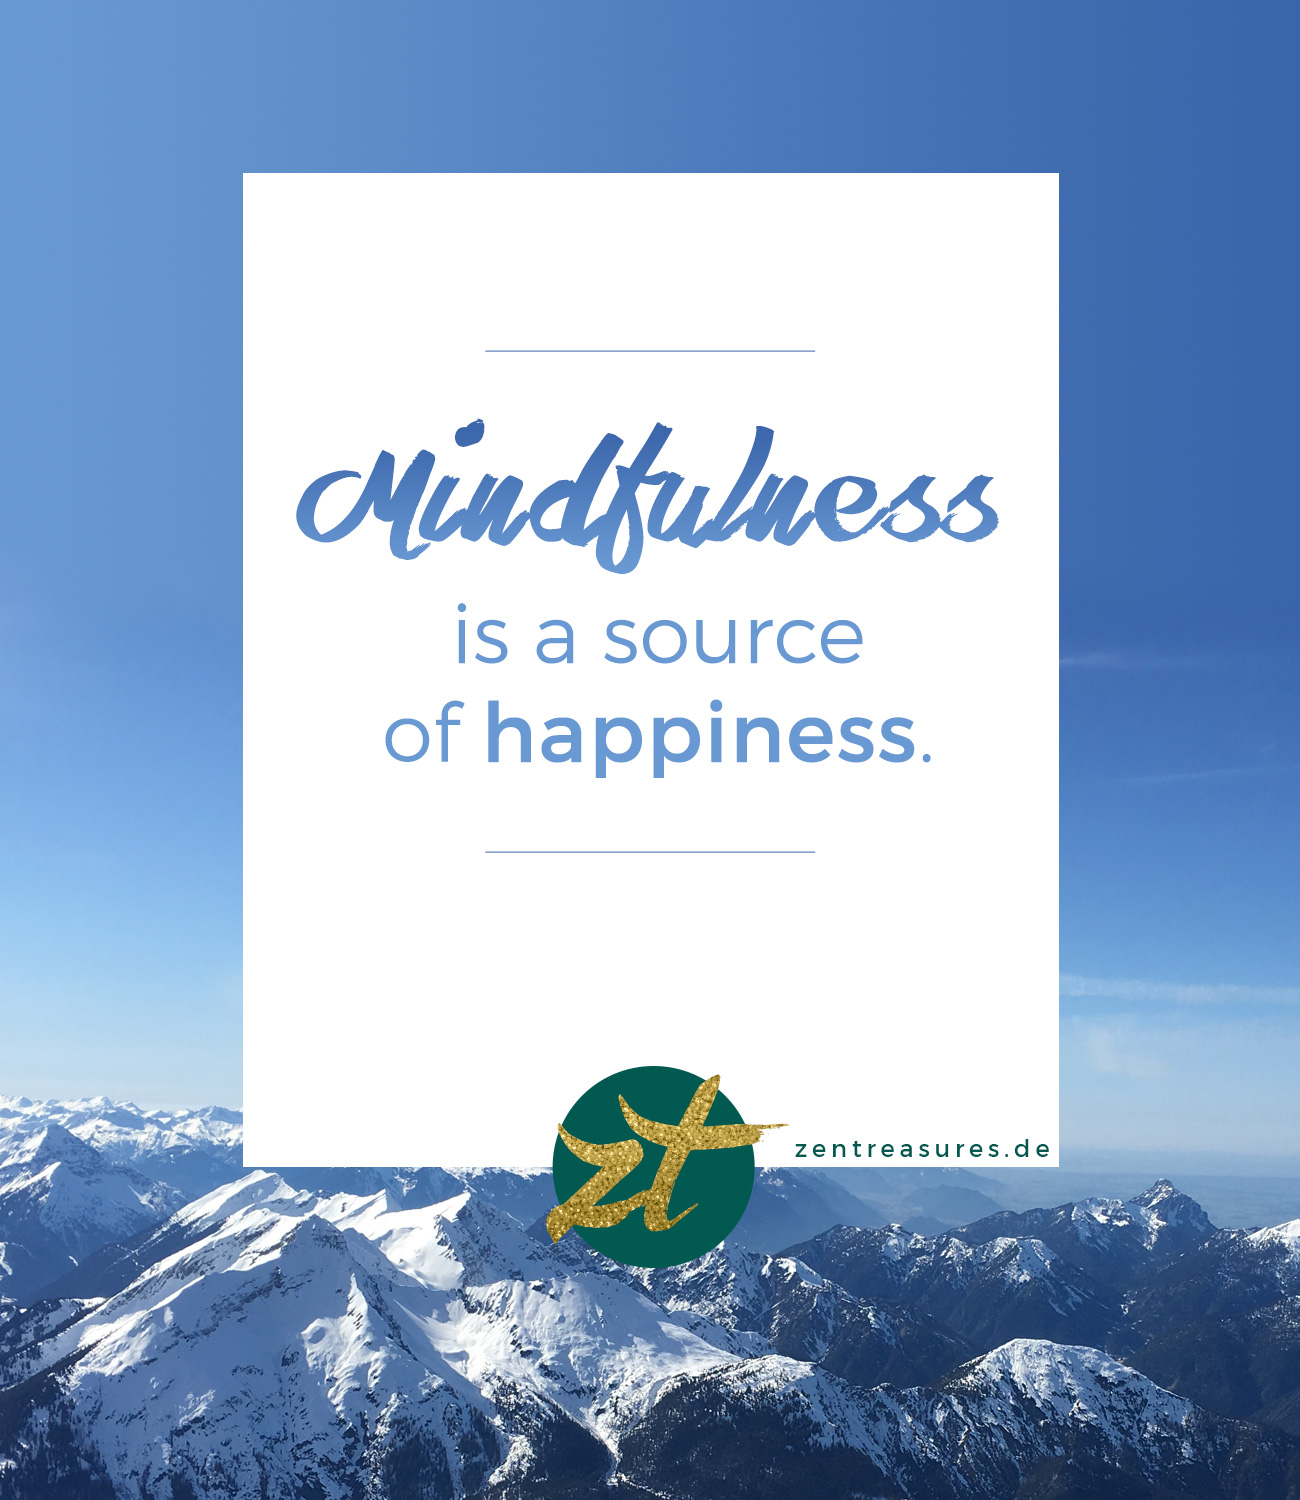 Mindfulness is a source of happiness.